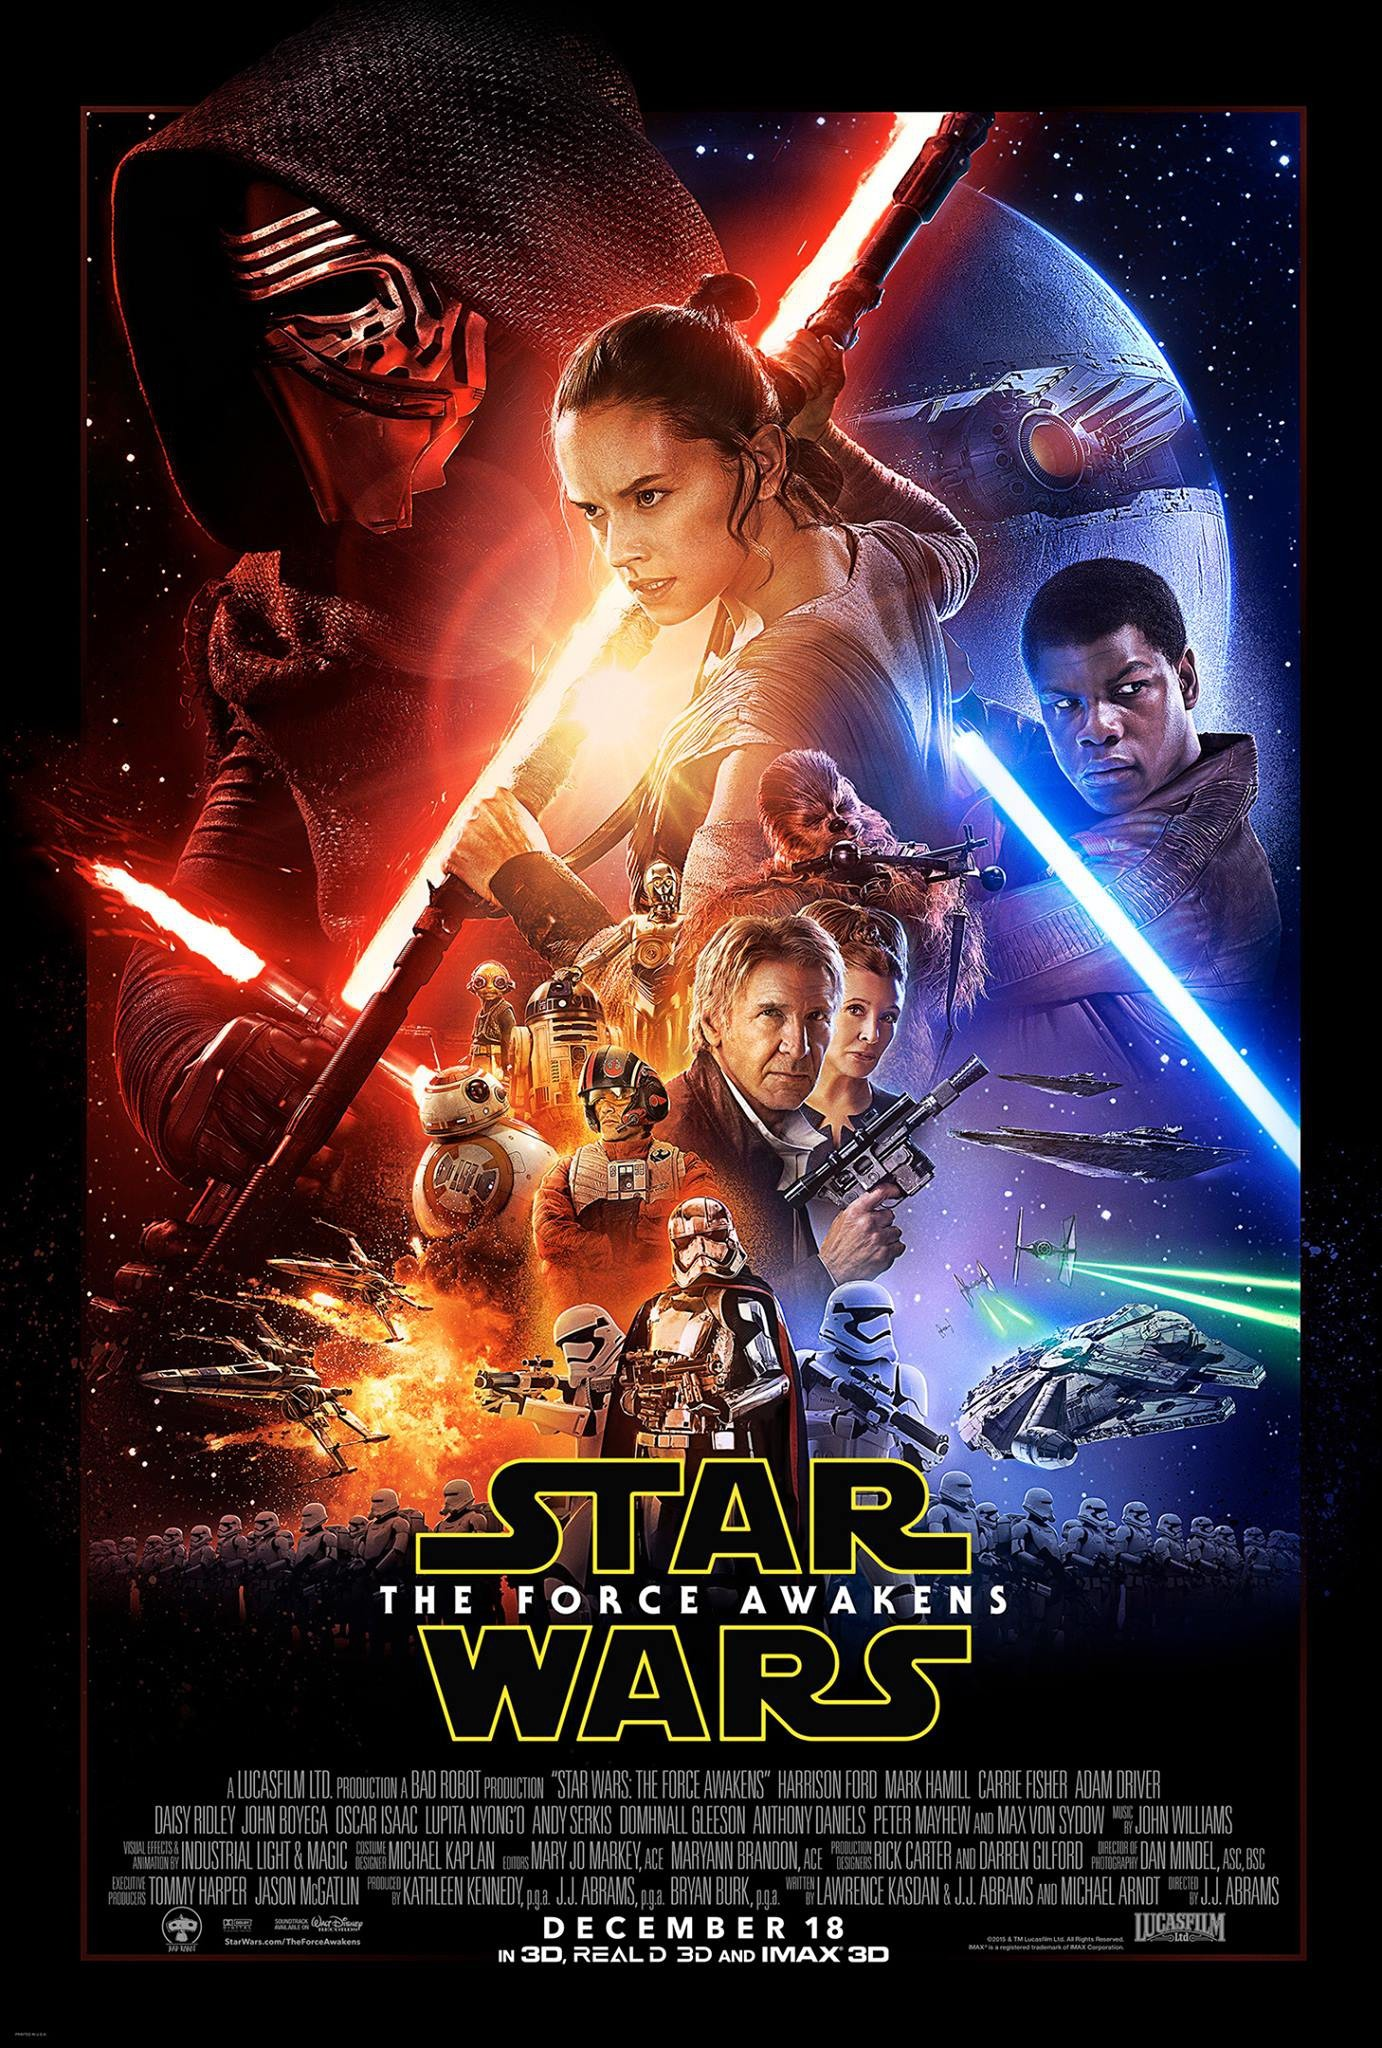 Film Poster: Masking, positioning, re-lighting characters. Provided various expressions for Han and Leia and added Maz.